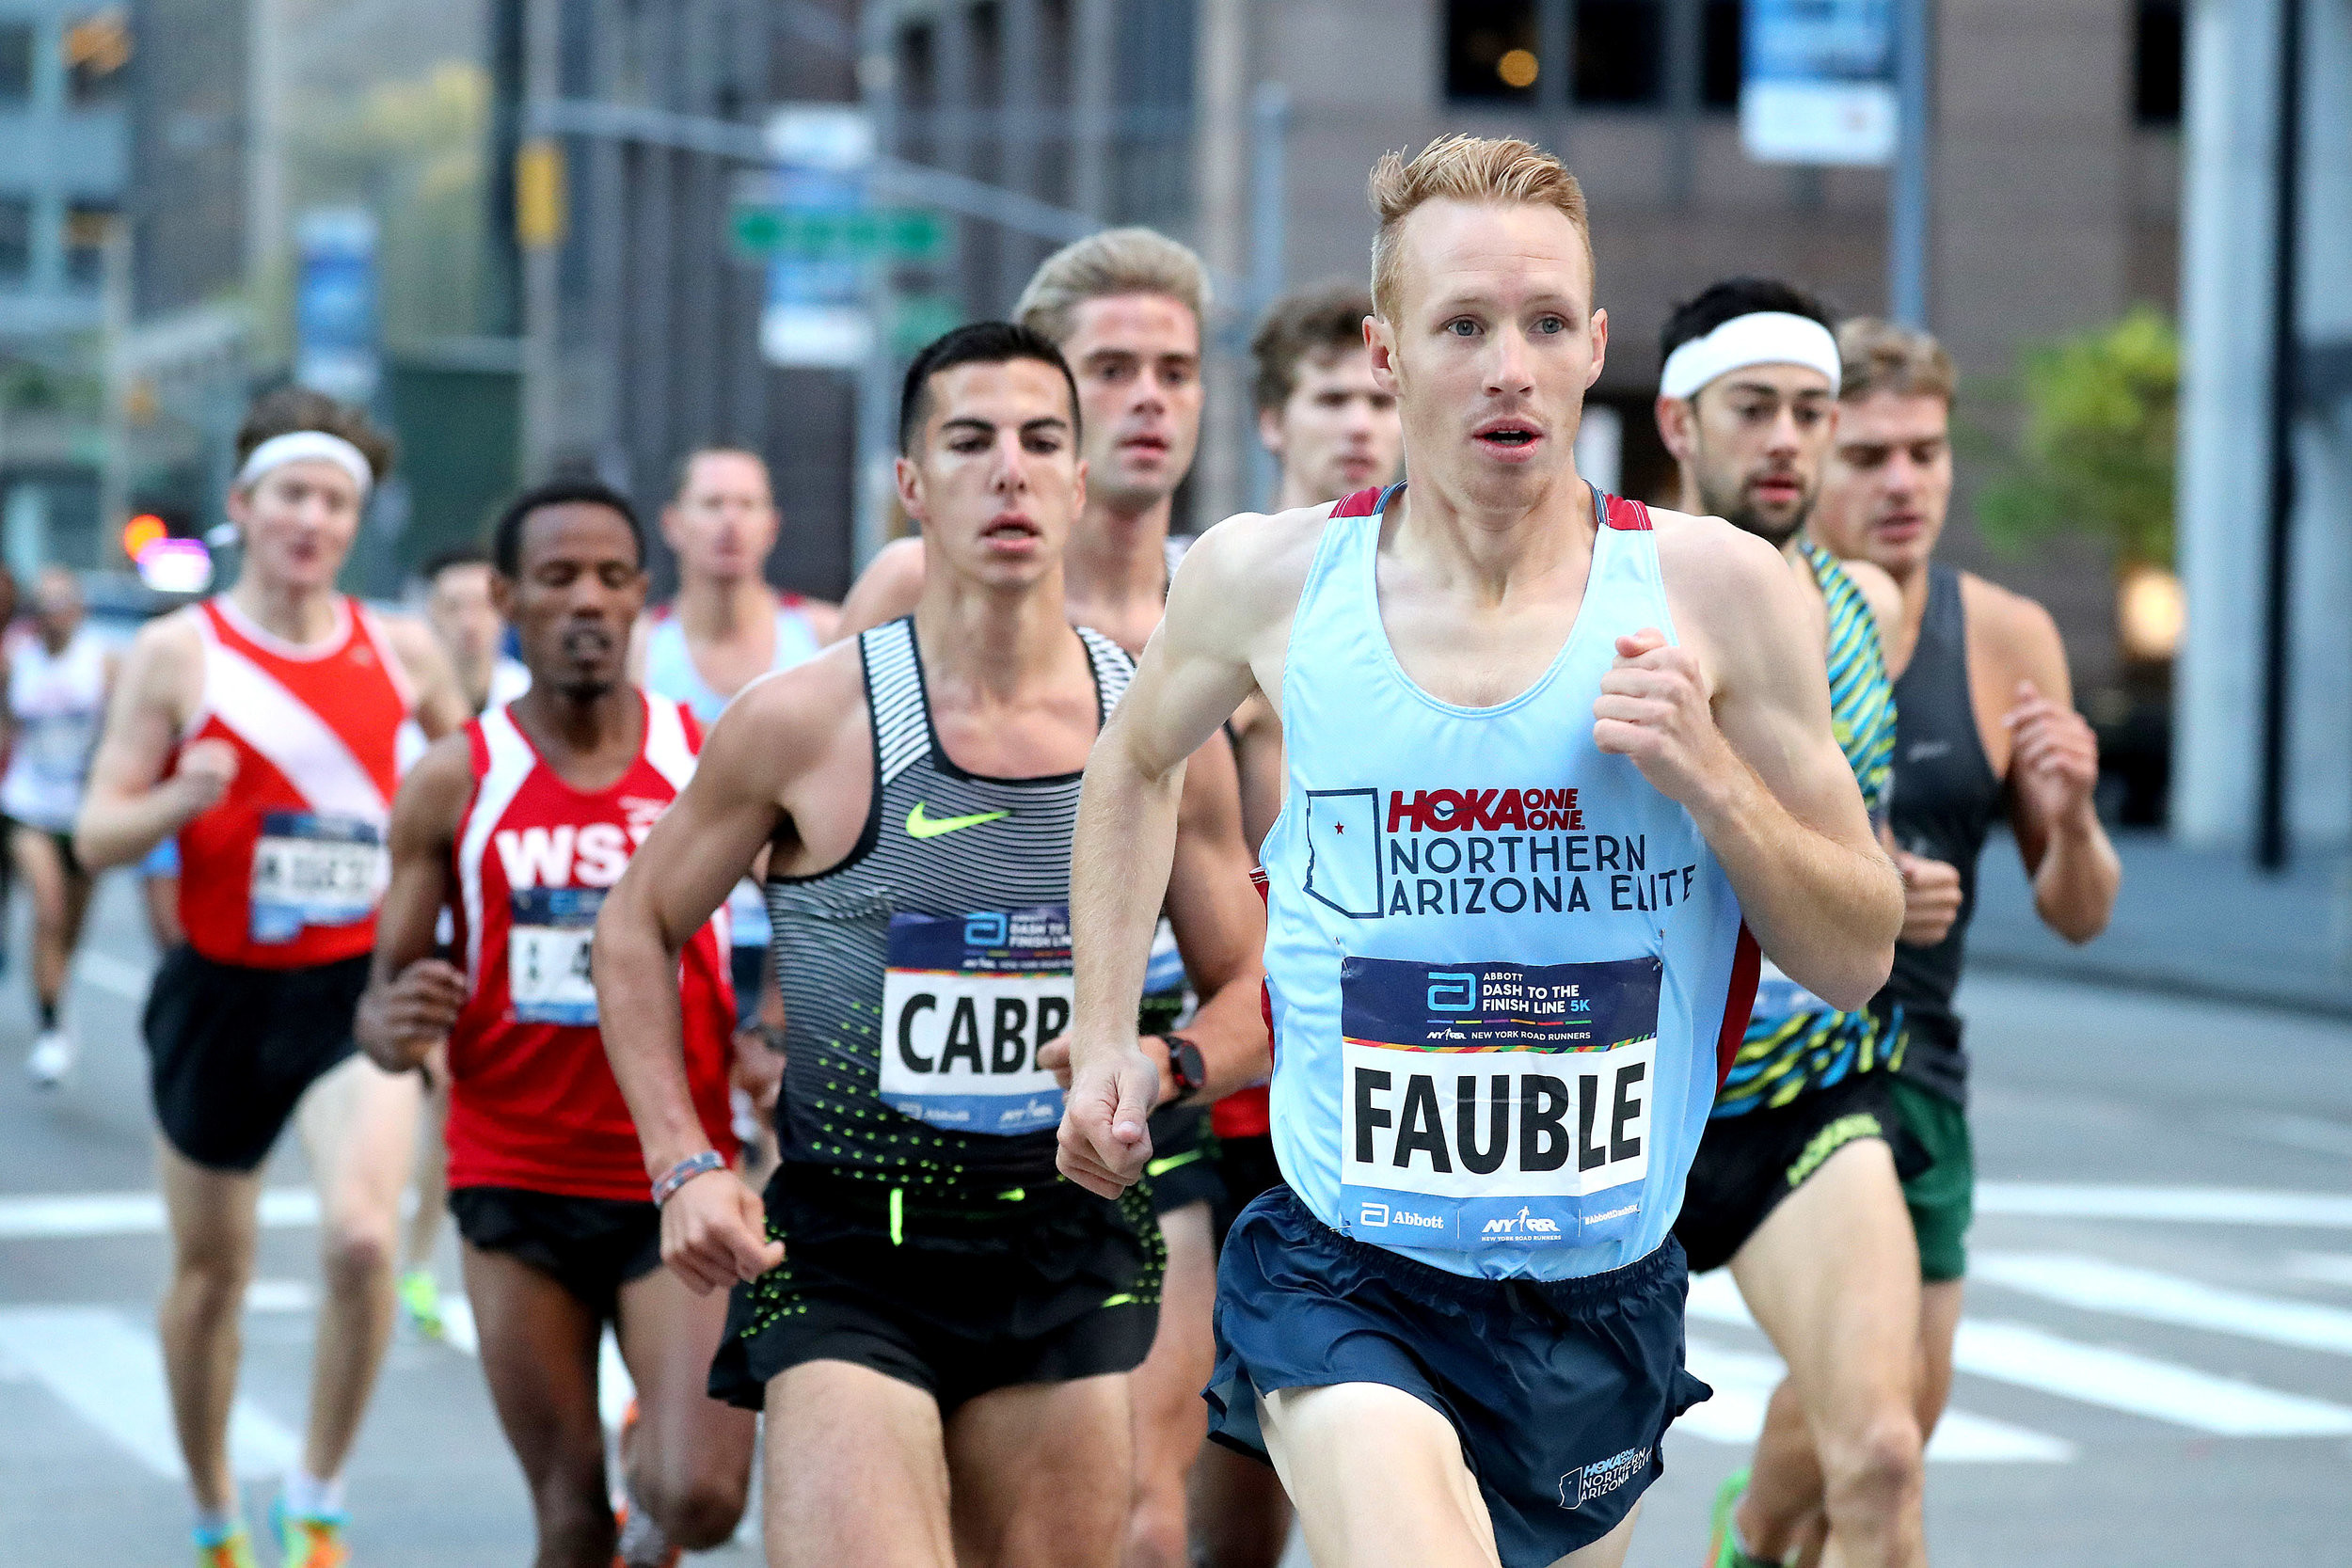 NAZ Elite's Scott Fauble is scheduled to run the TCS New York Marathon